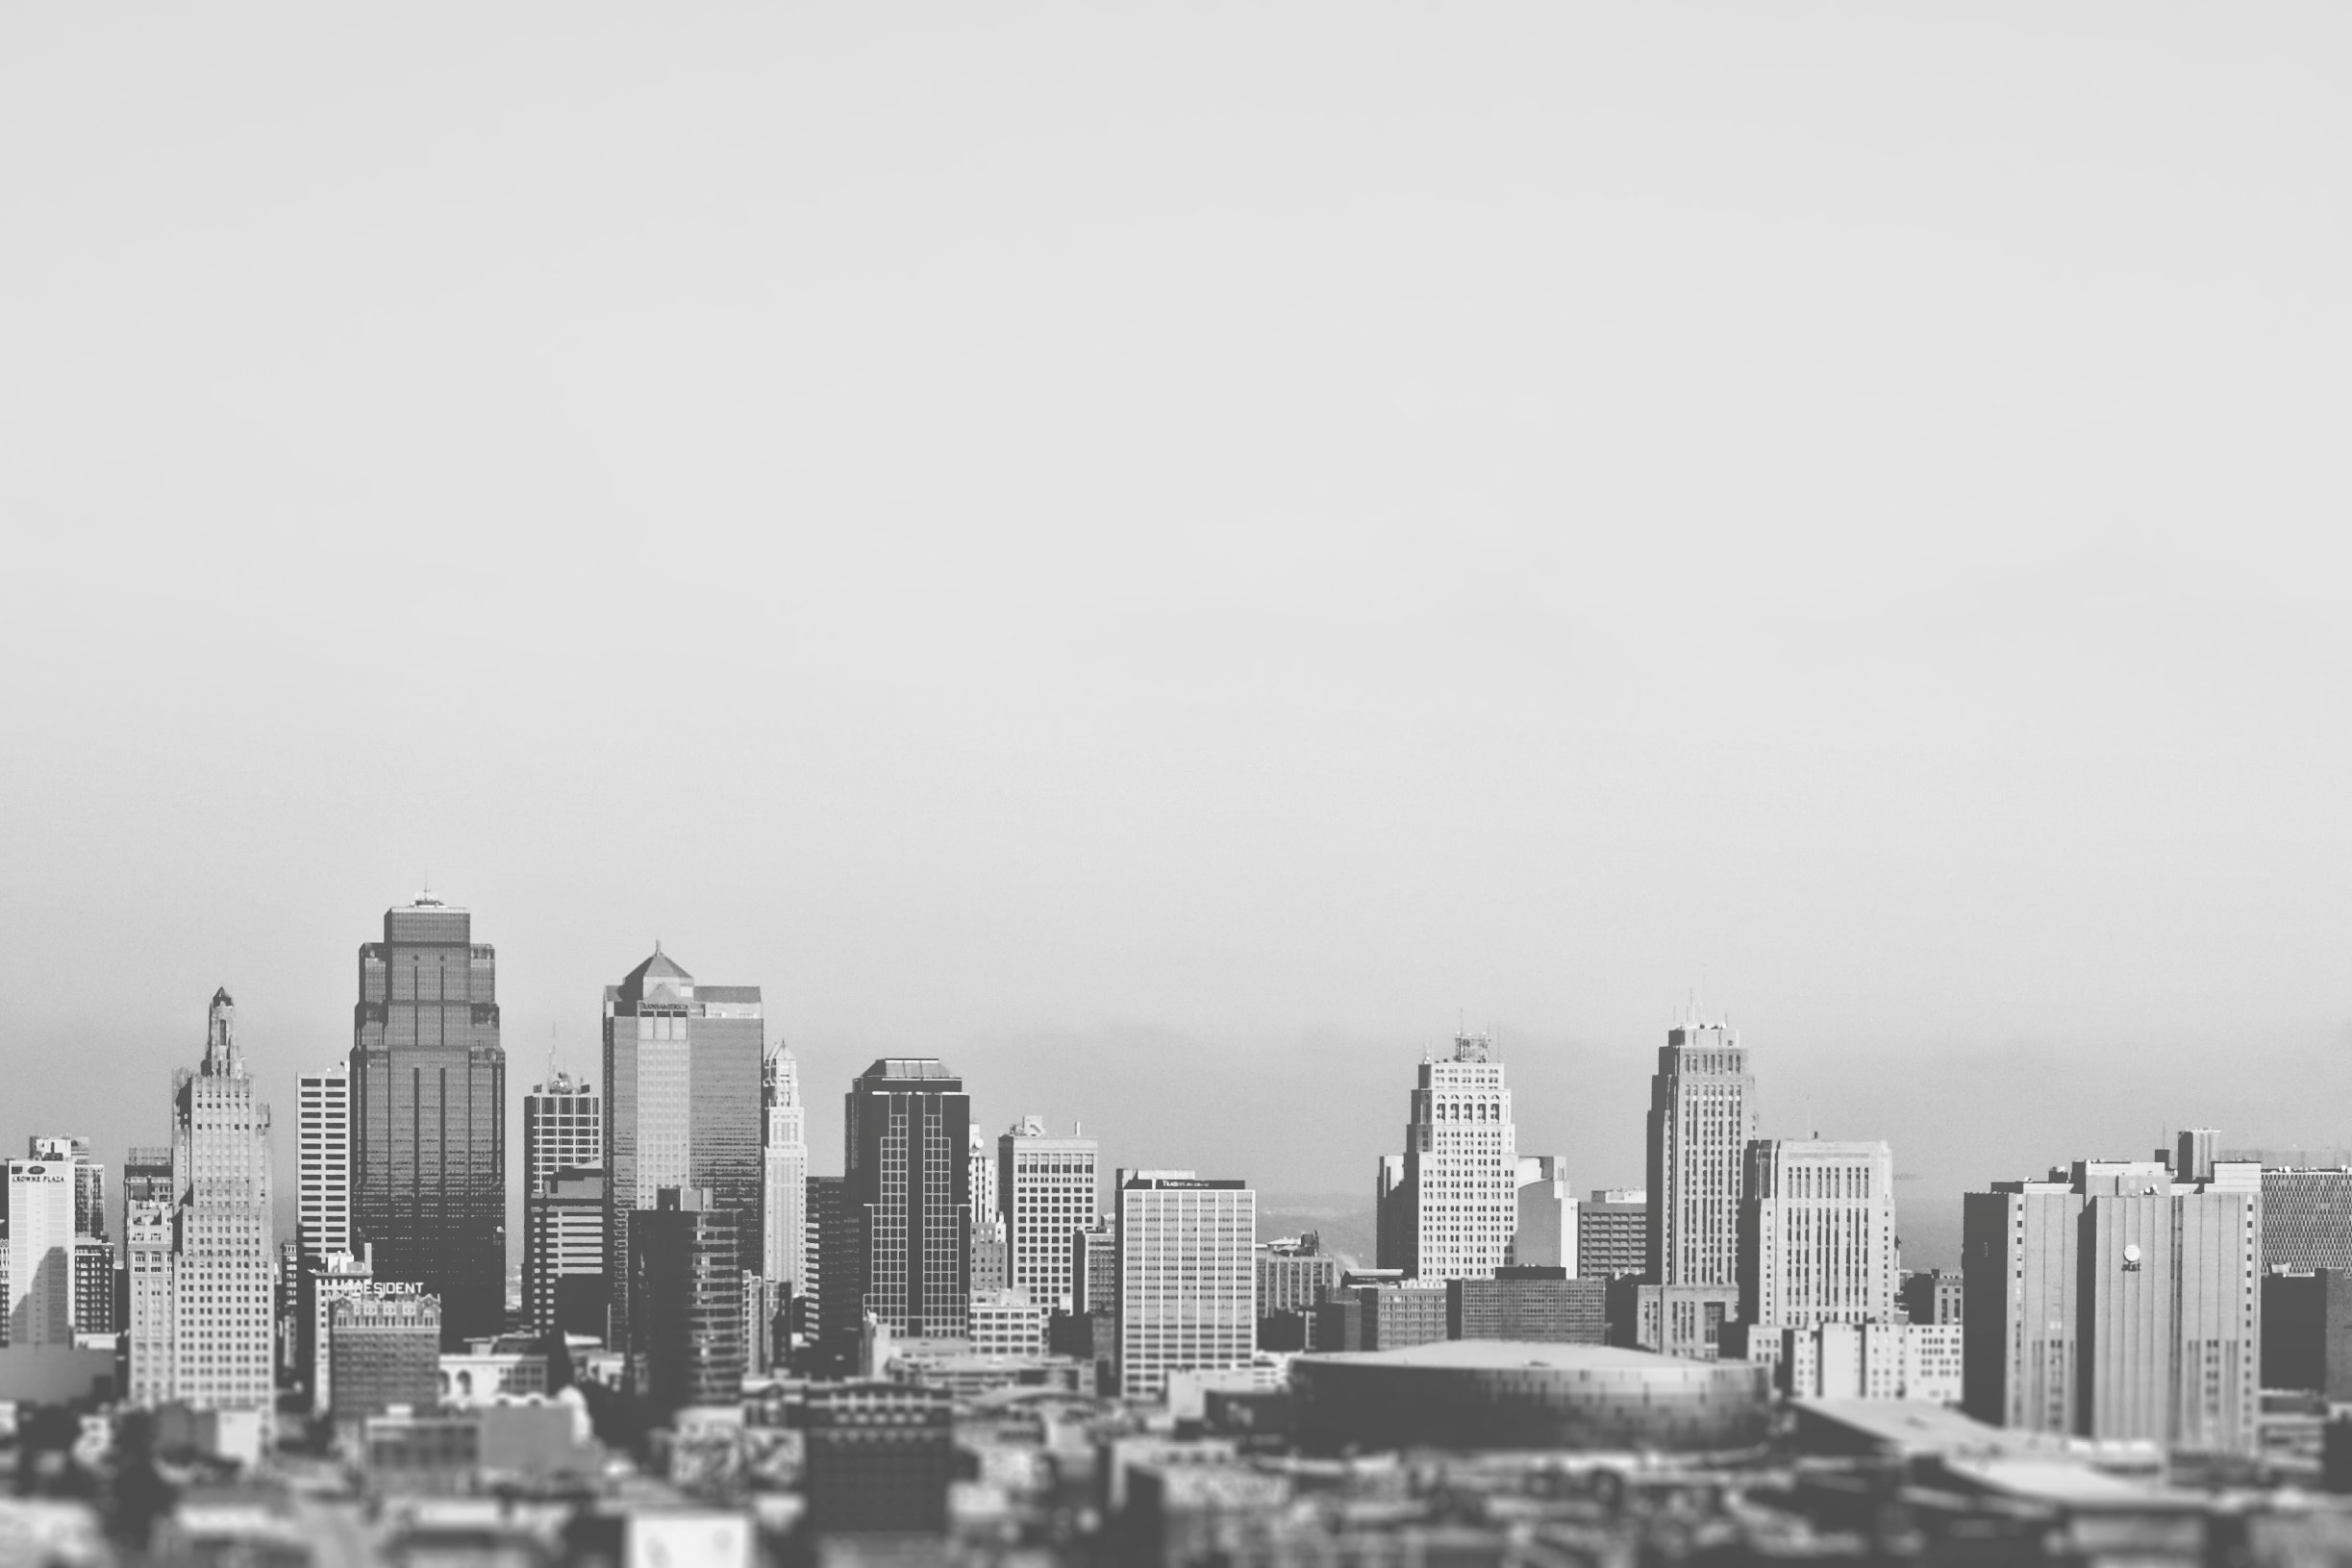 Typical american city downtown in black and white · Free Stock Photo